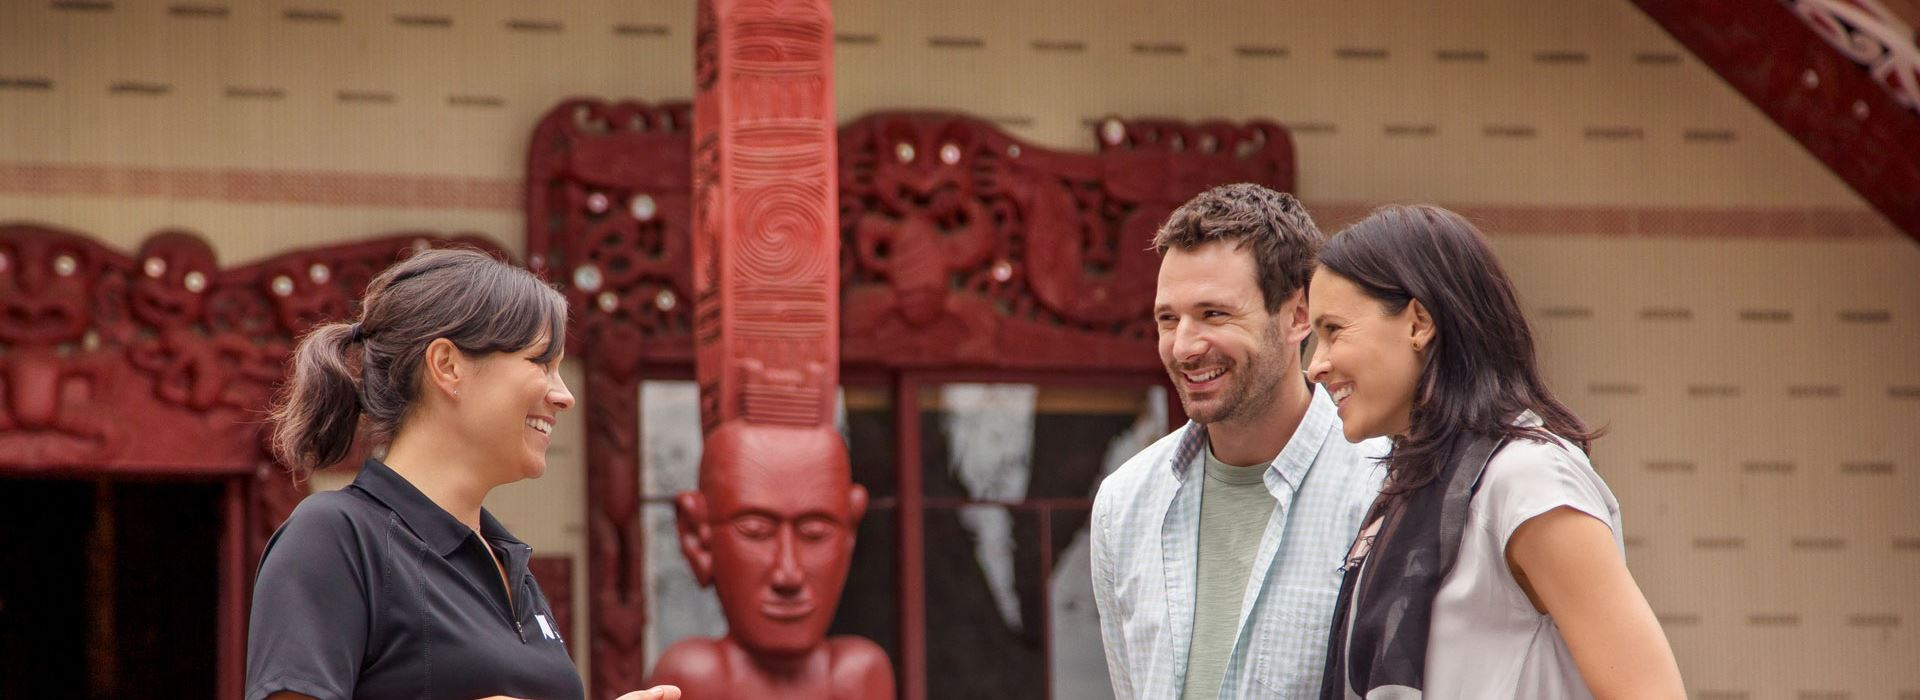 Native Maori Culture in New Zealand